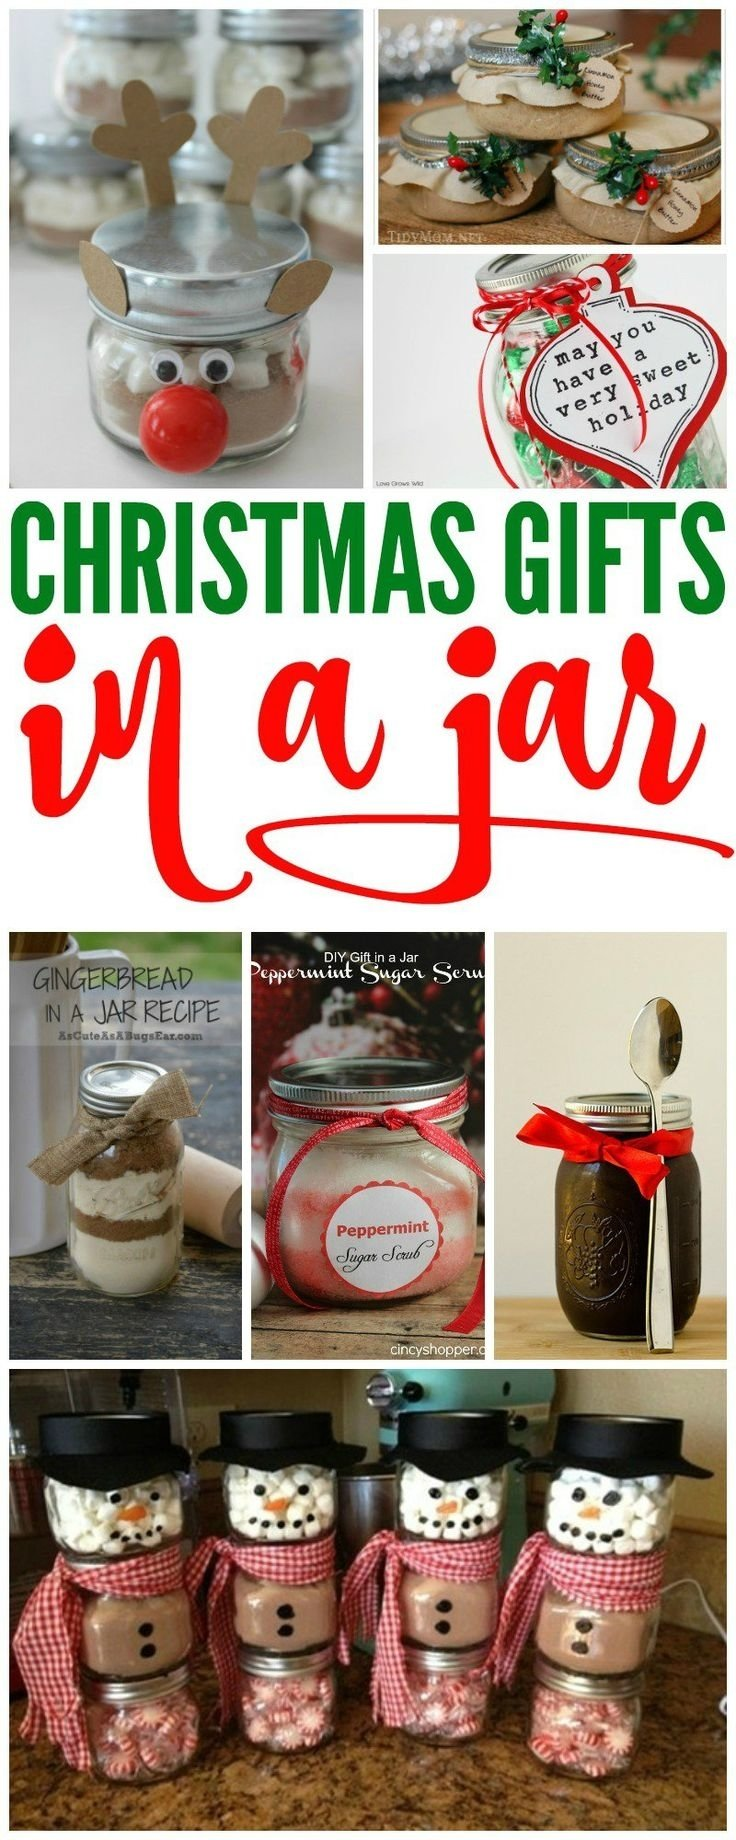 10 Ideal Christmas Gift Ideas For Brothers 72 best christmas gift ideas for teachers images on pinterest 1 2020